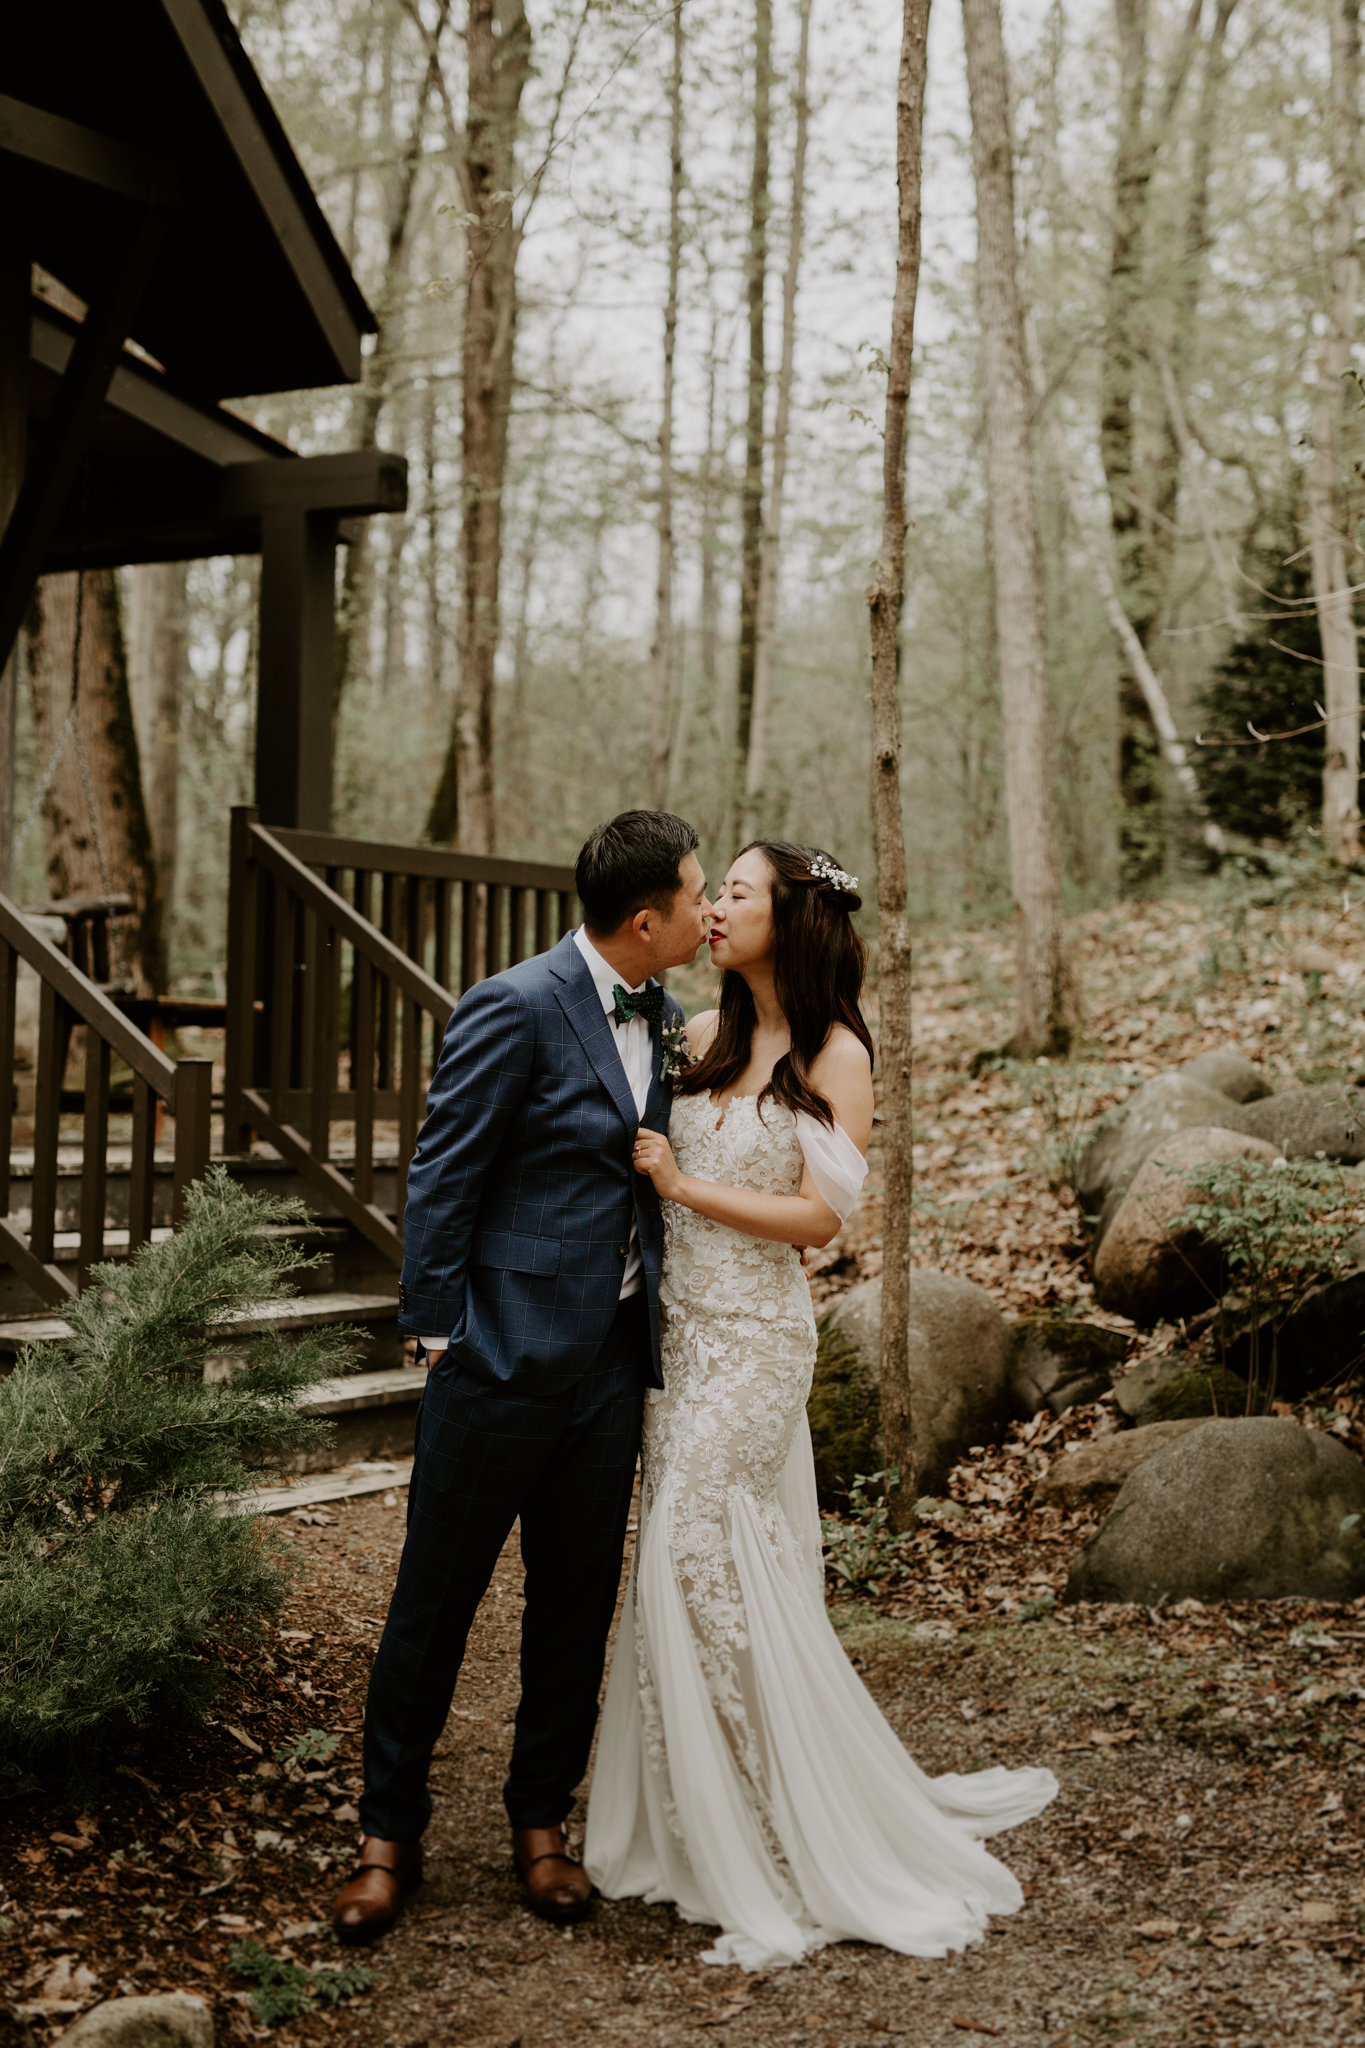 Serenity Cottage Wedding - bride and groom kiss in front of cottage